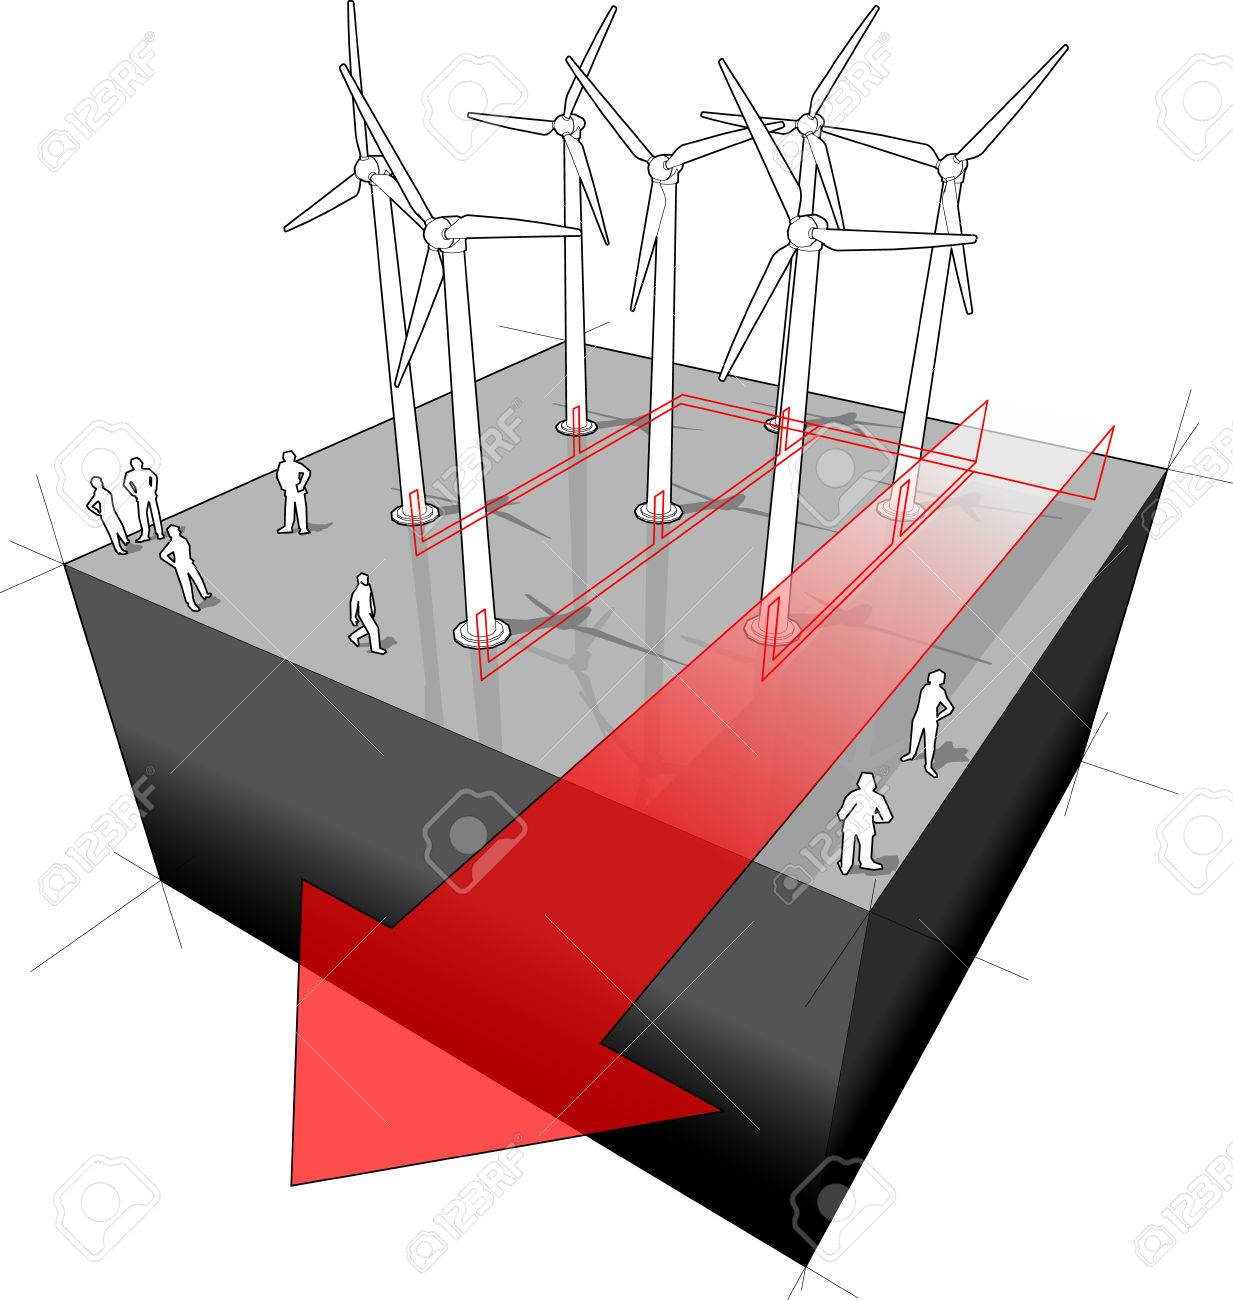 Diagram Of A Wind Turbines Farm With Electro Wires And Turbine Generator Wiring Arrow Stock Vector